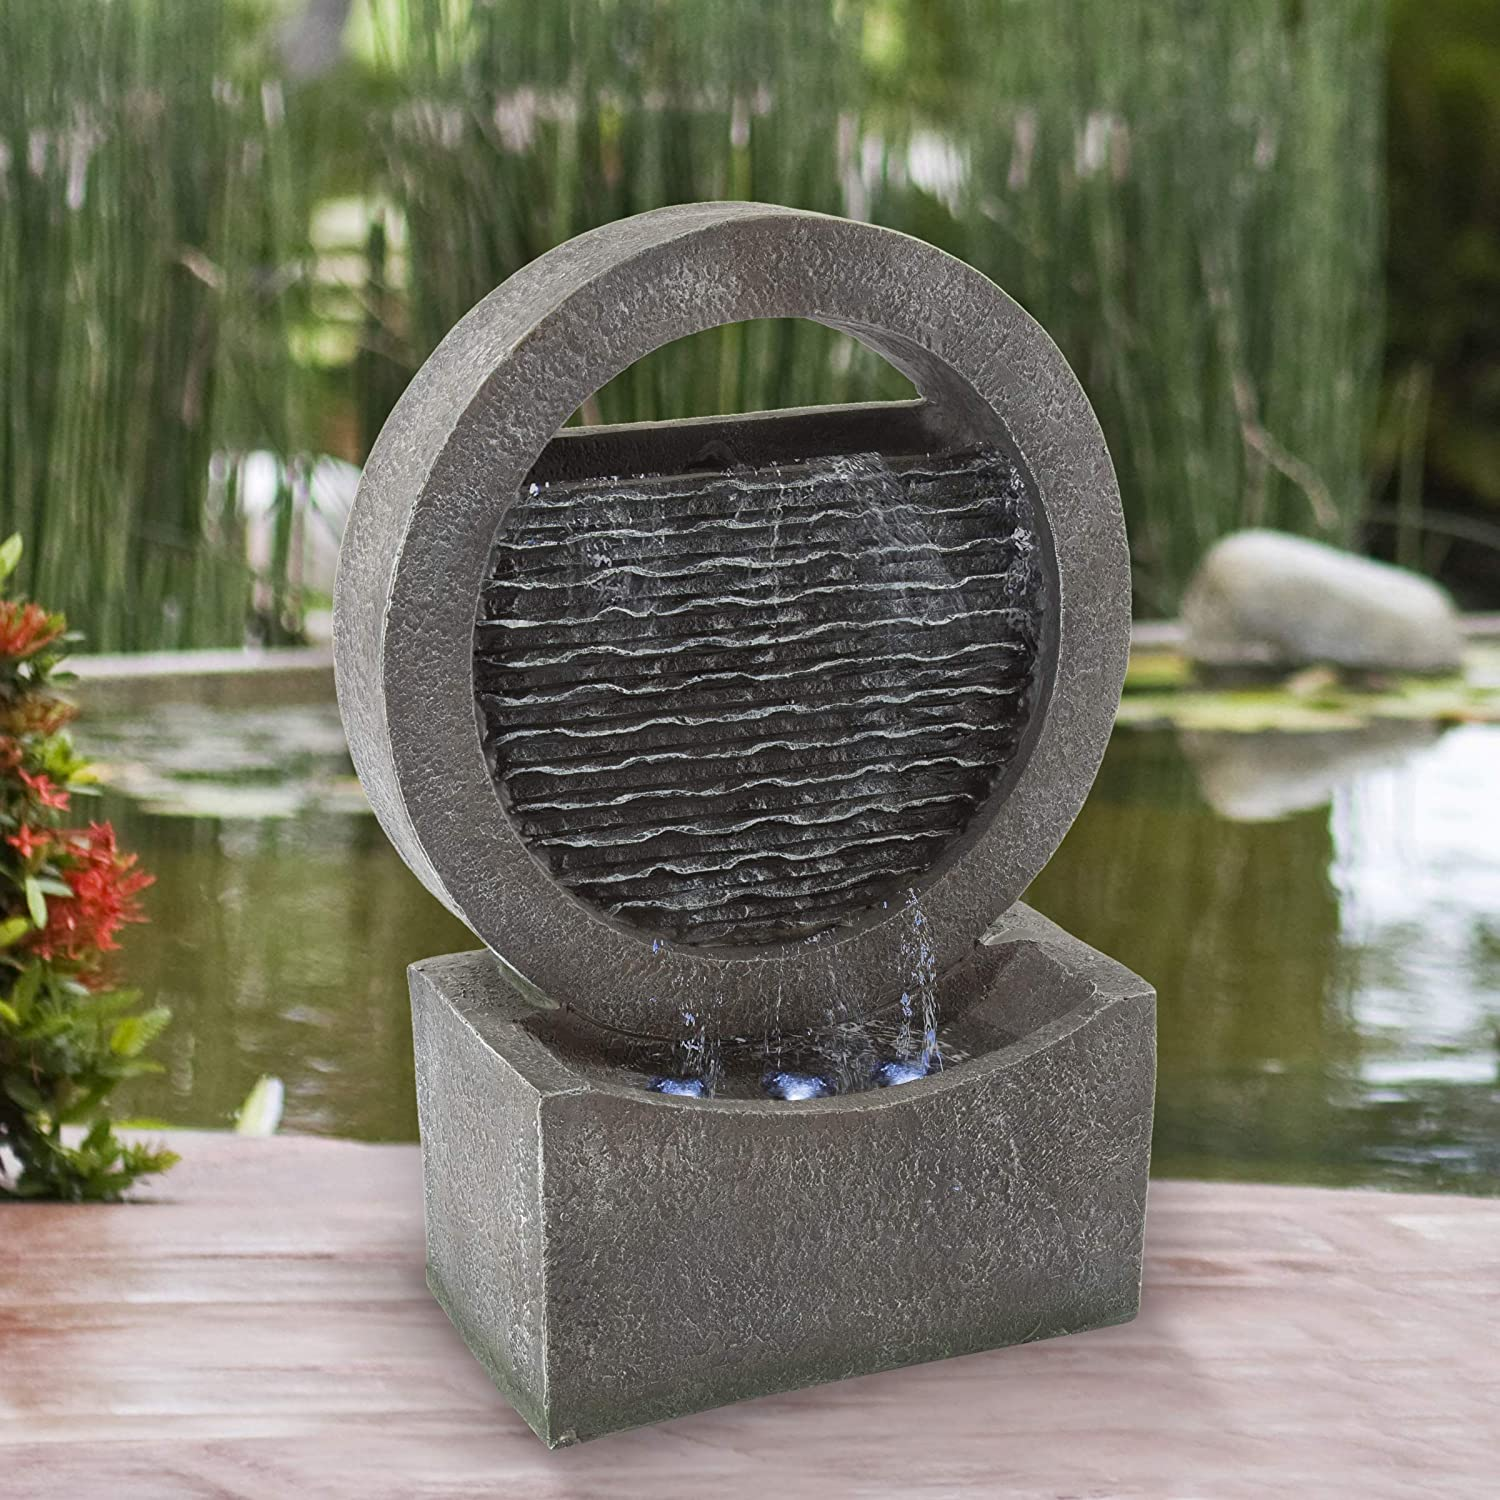 Pure Garden 50-LG1217 Round Cascade Fountain-Polyresin Waterfall with LED Lights, Silver